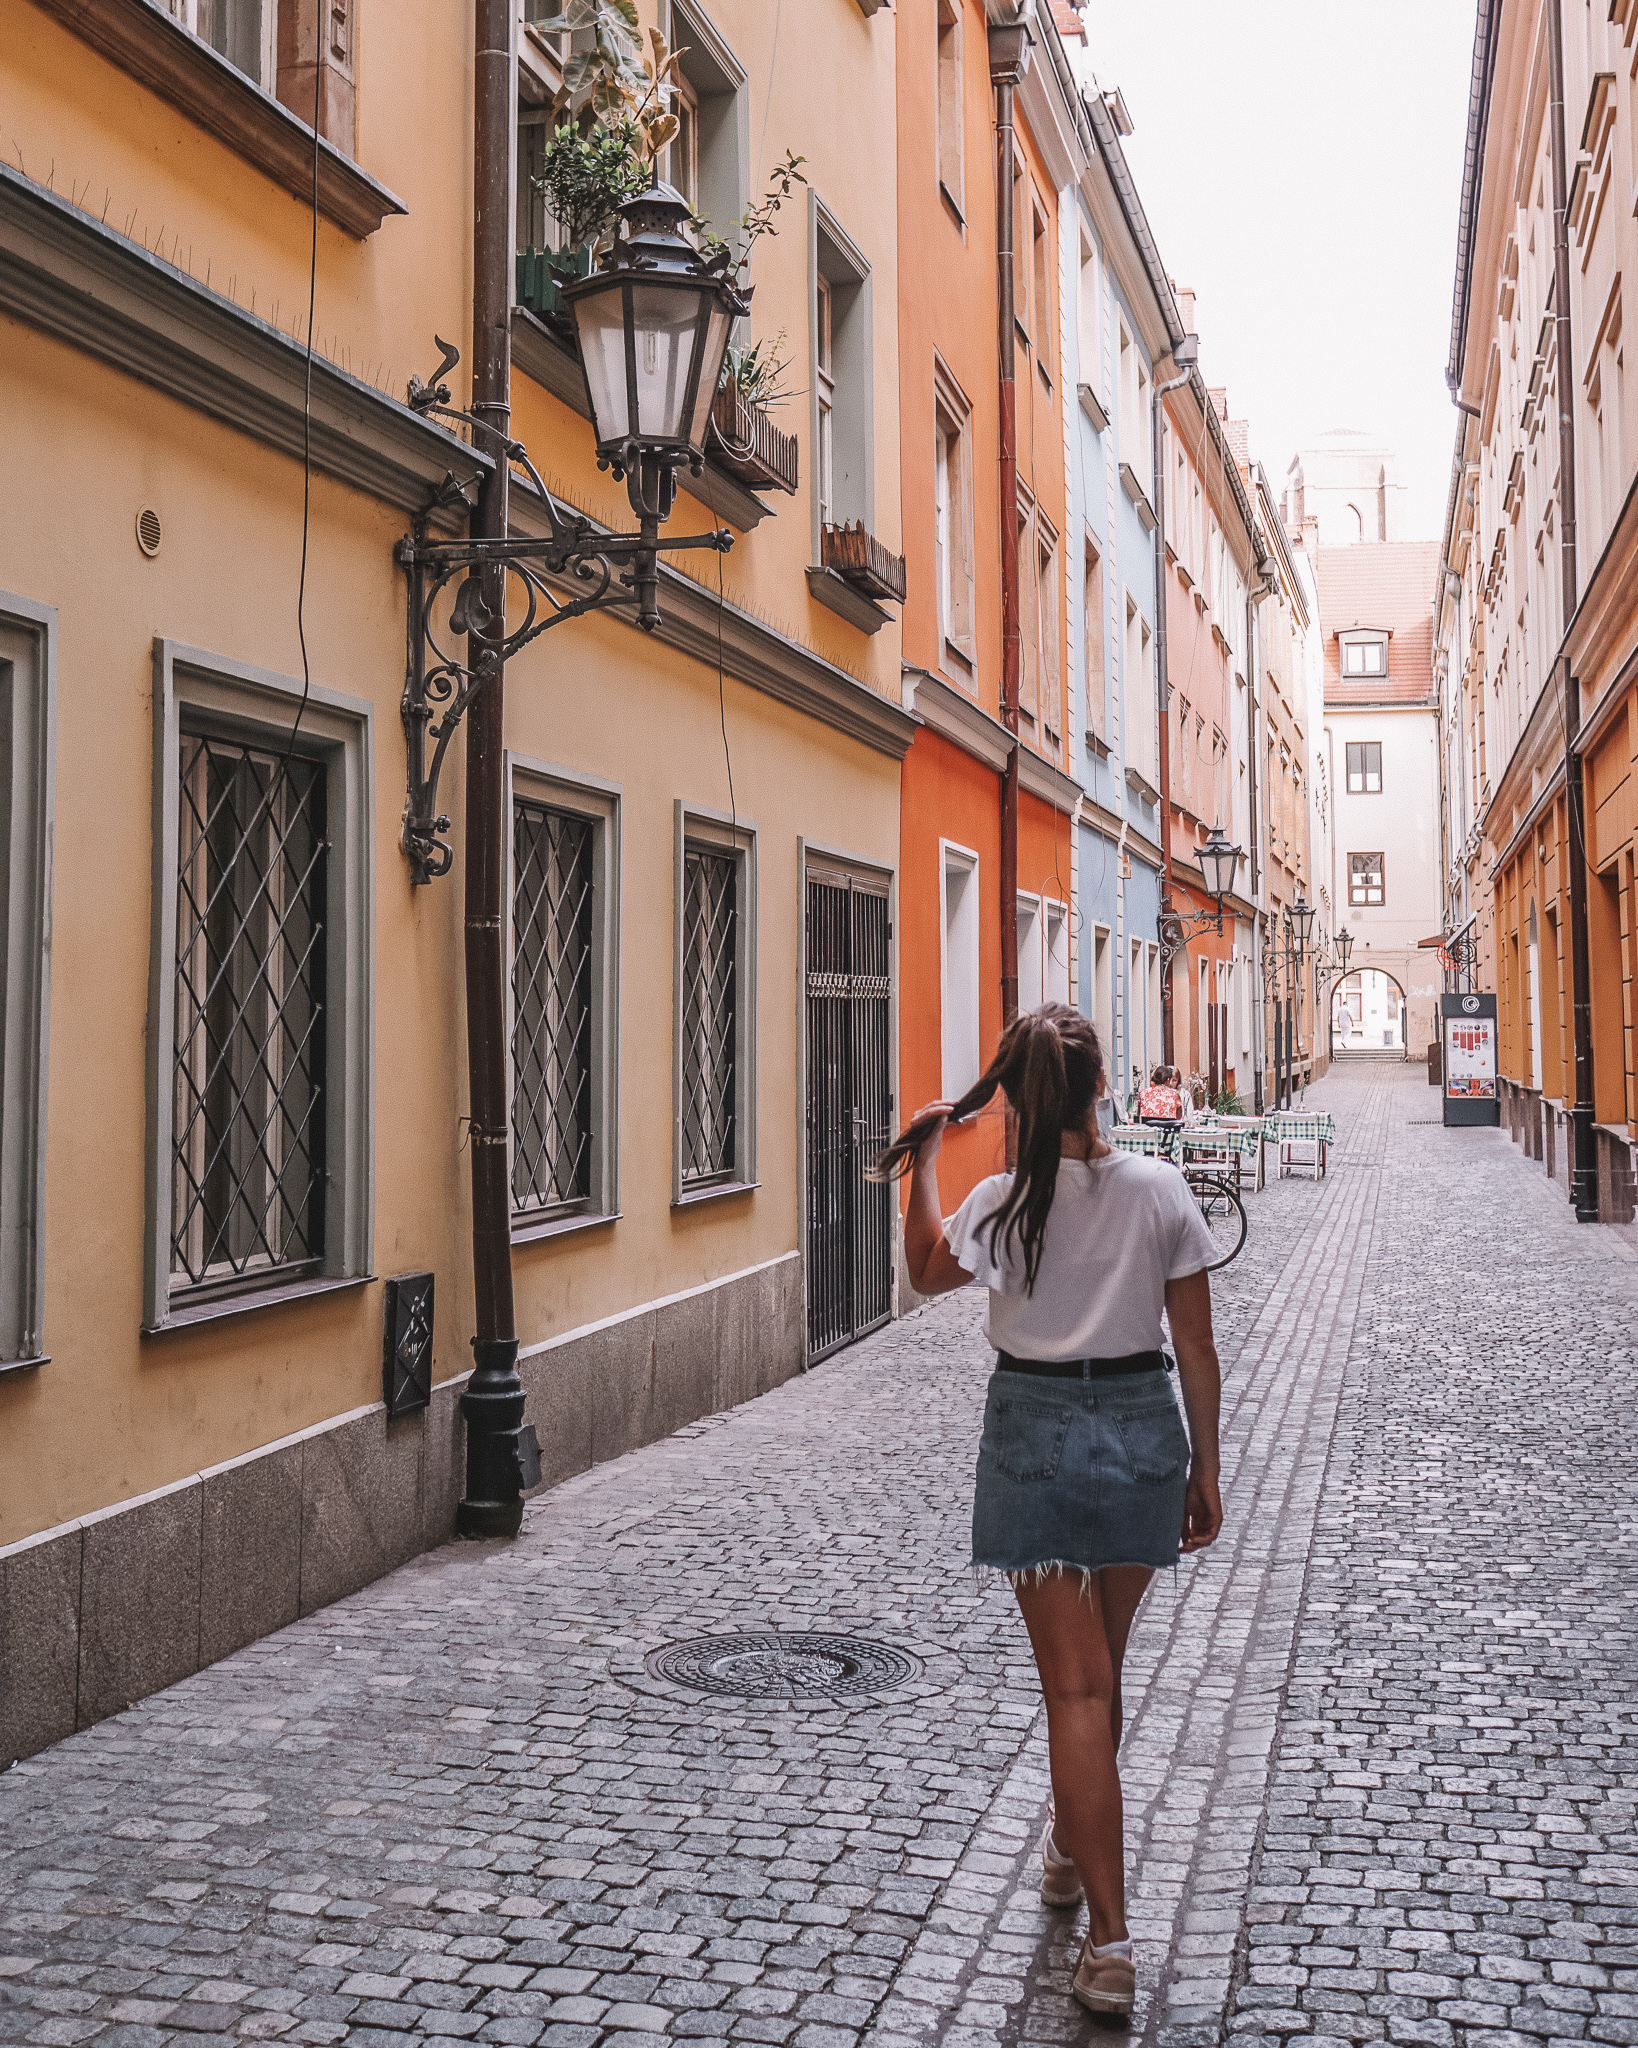 Walking through the streets of Wroclaw